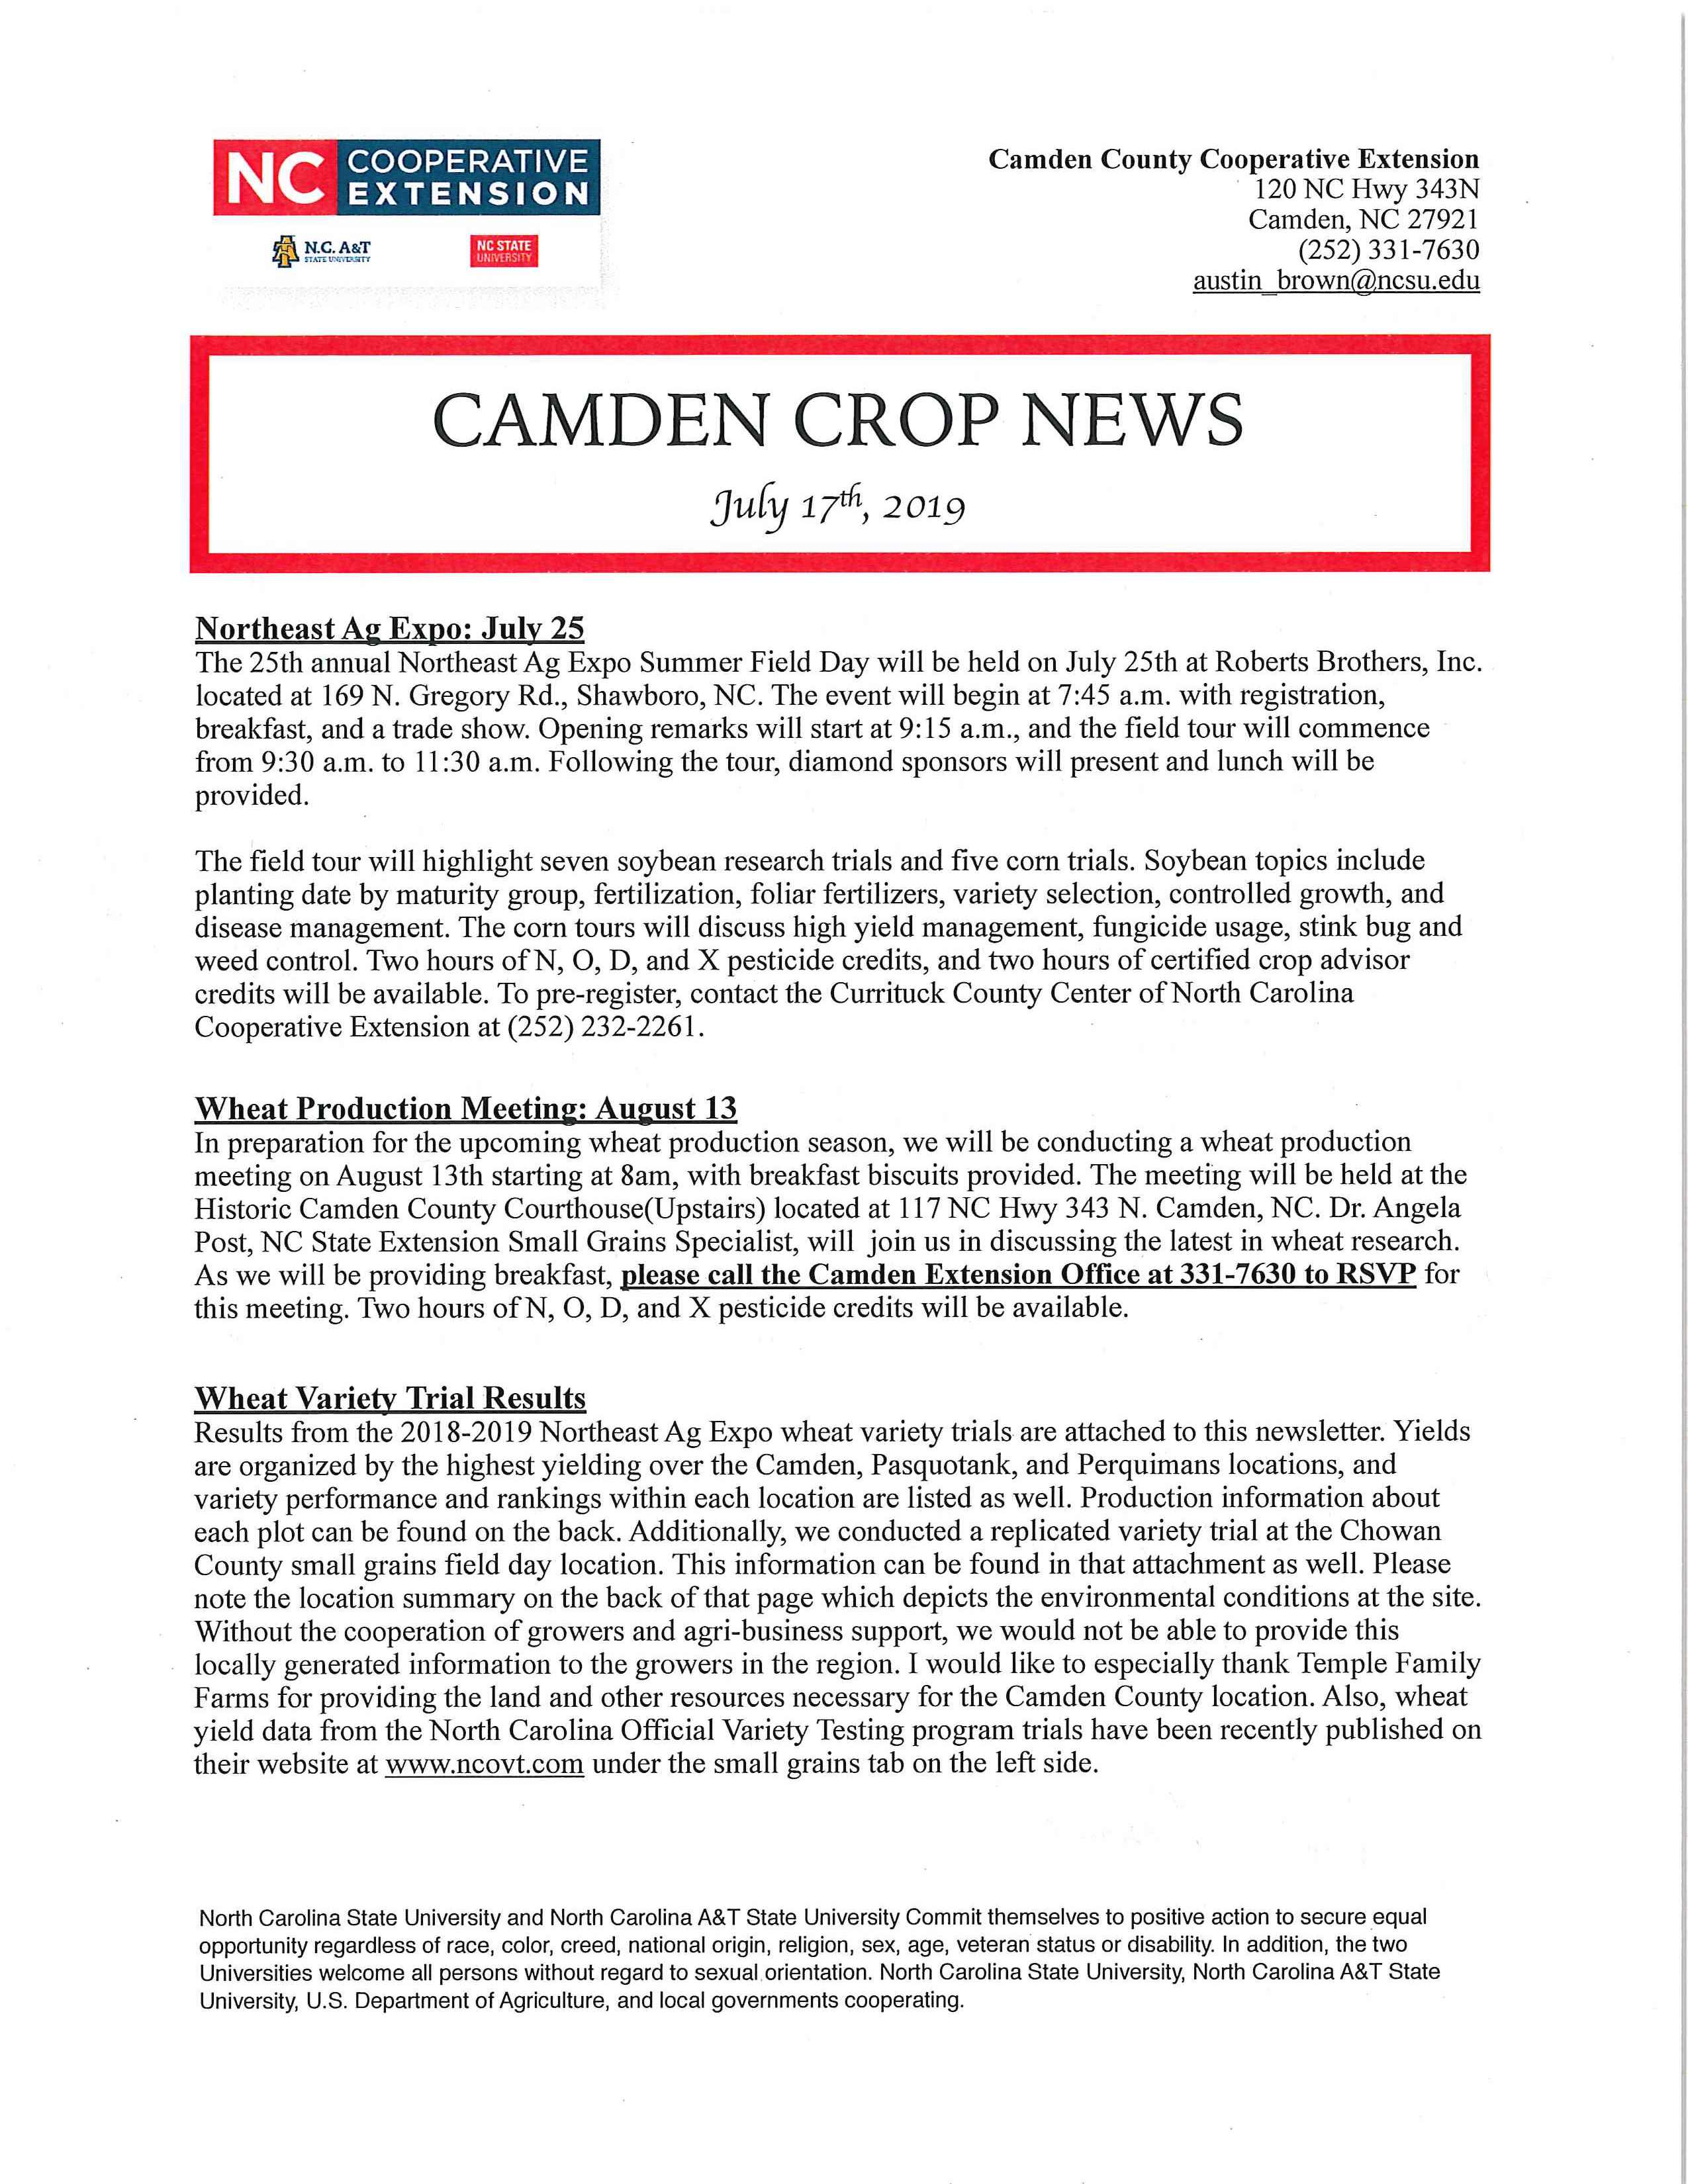 Crop News page image